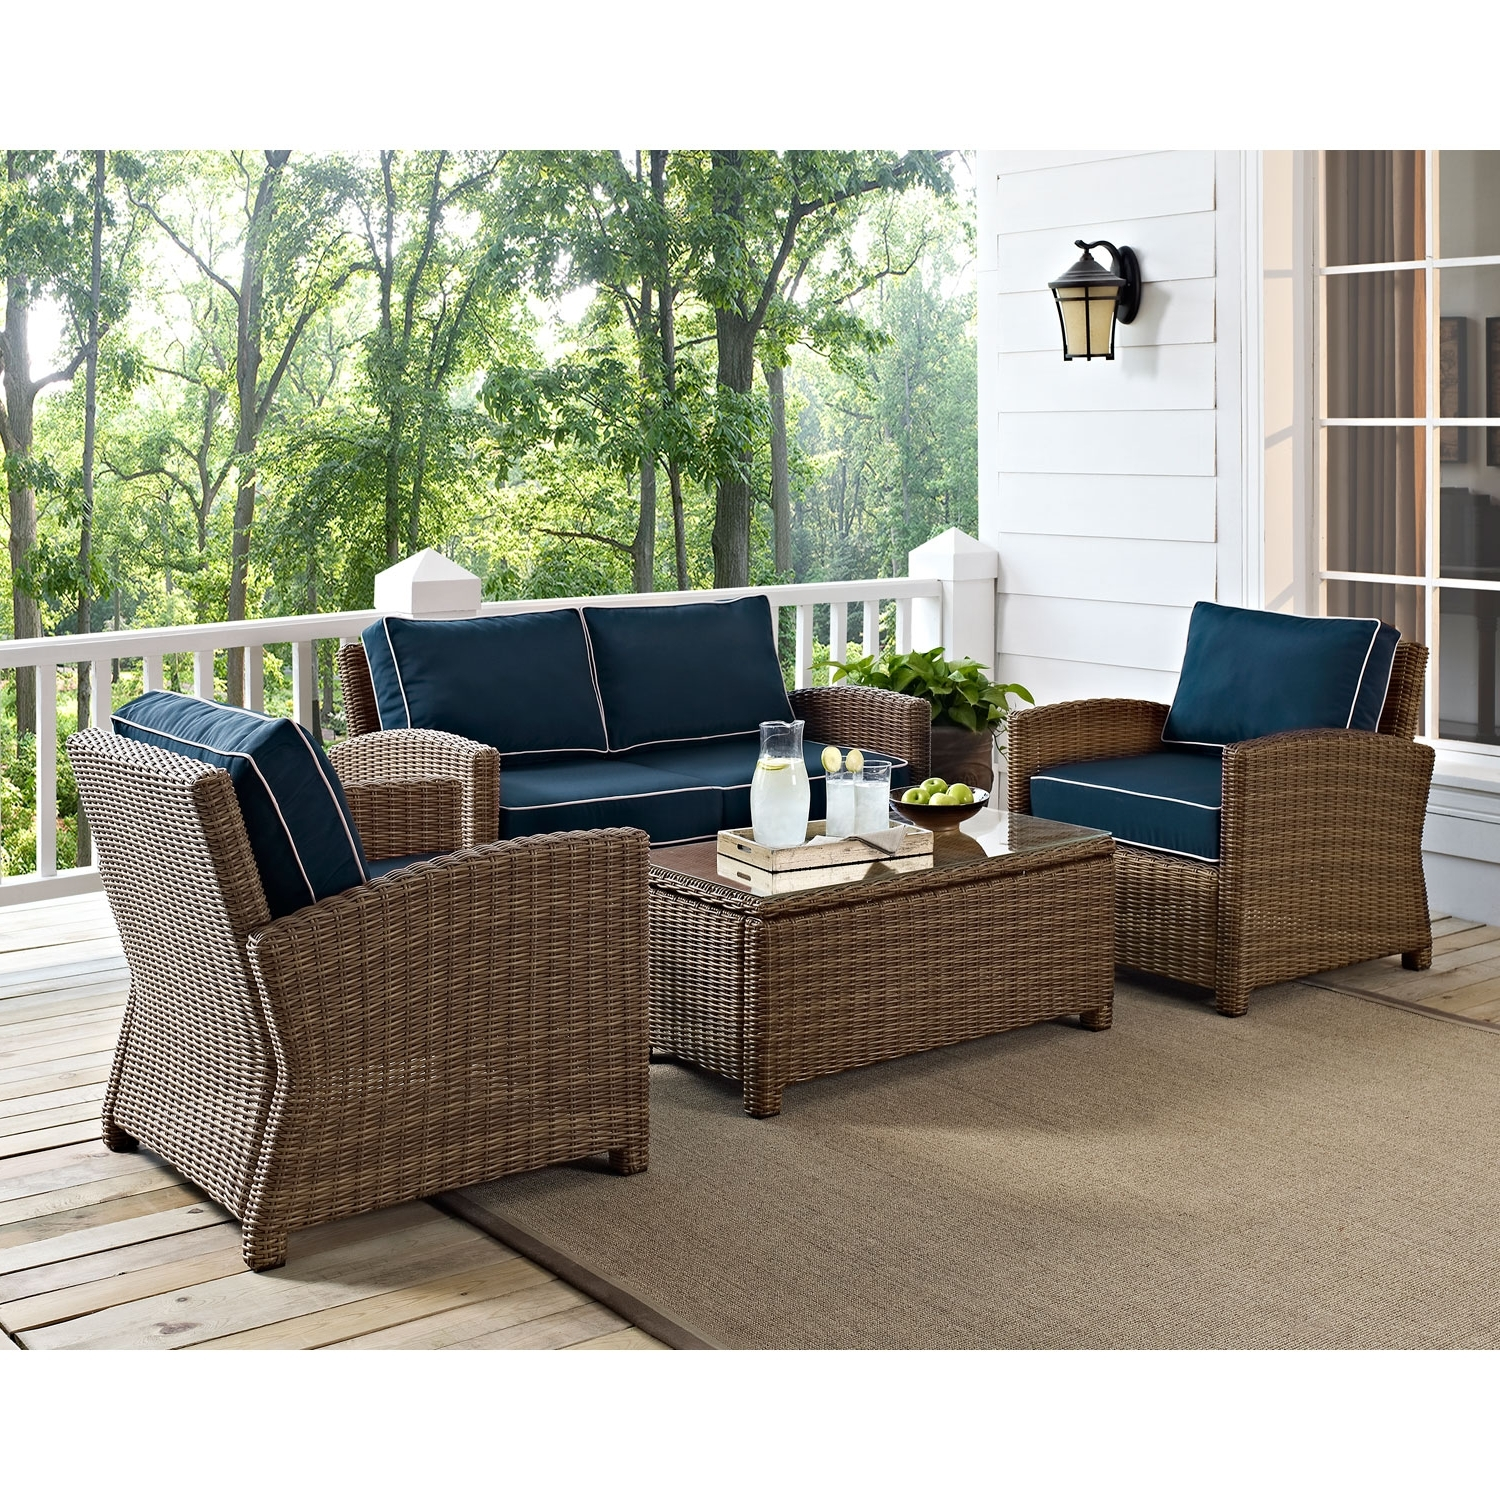 Most Popular 4 Piece Patio Conversation Sets Intended For Crosley Furniture Bradenton 4 Piece Outdoor Wicker Seating Set With (View 12 of 20)